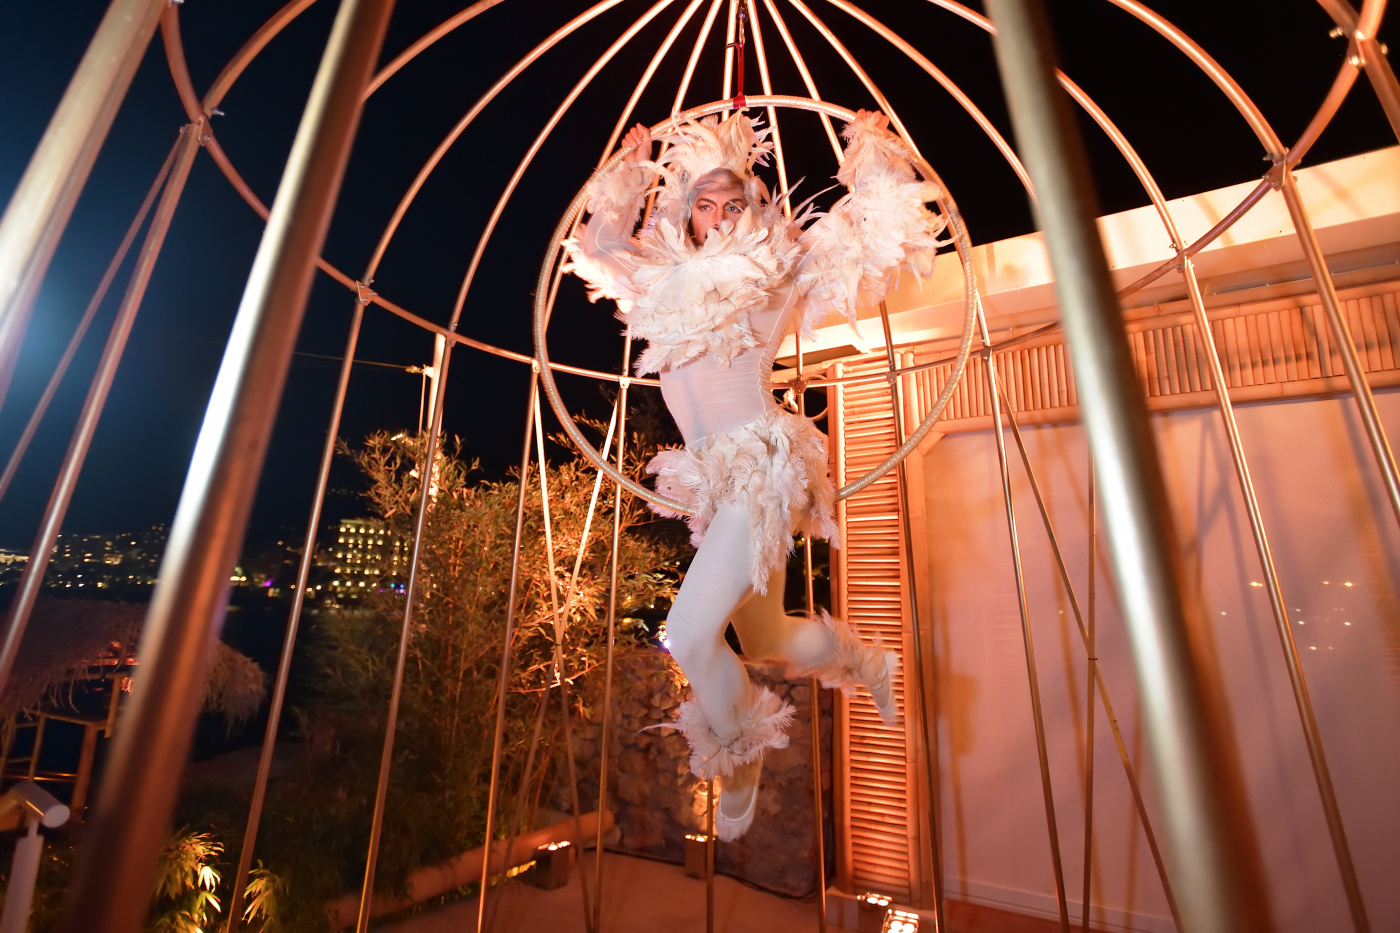 acrobat dancing in a golden cage as birthday entertainment